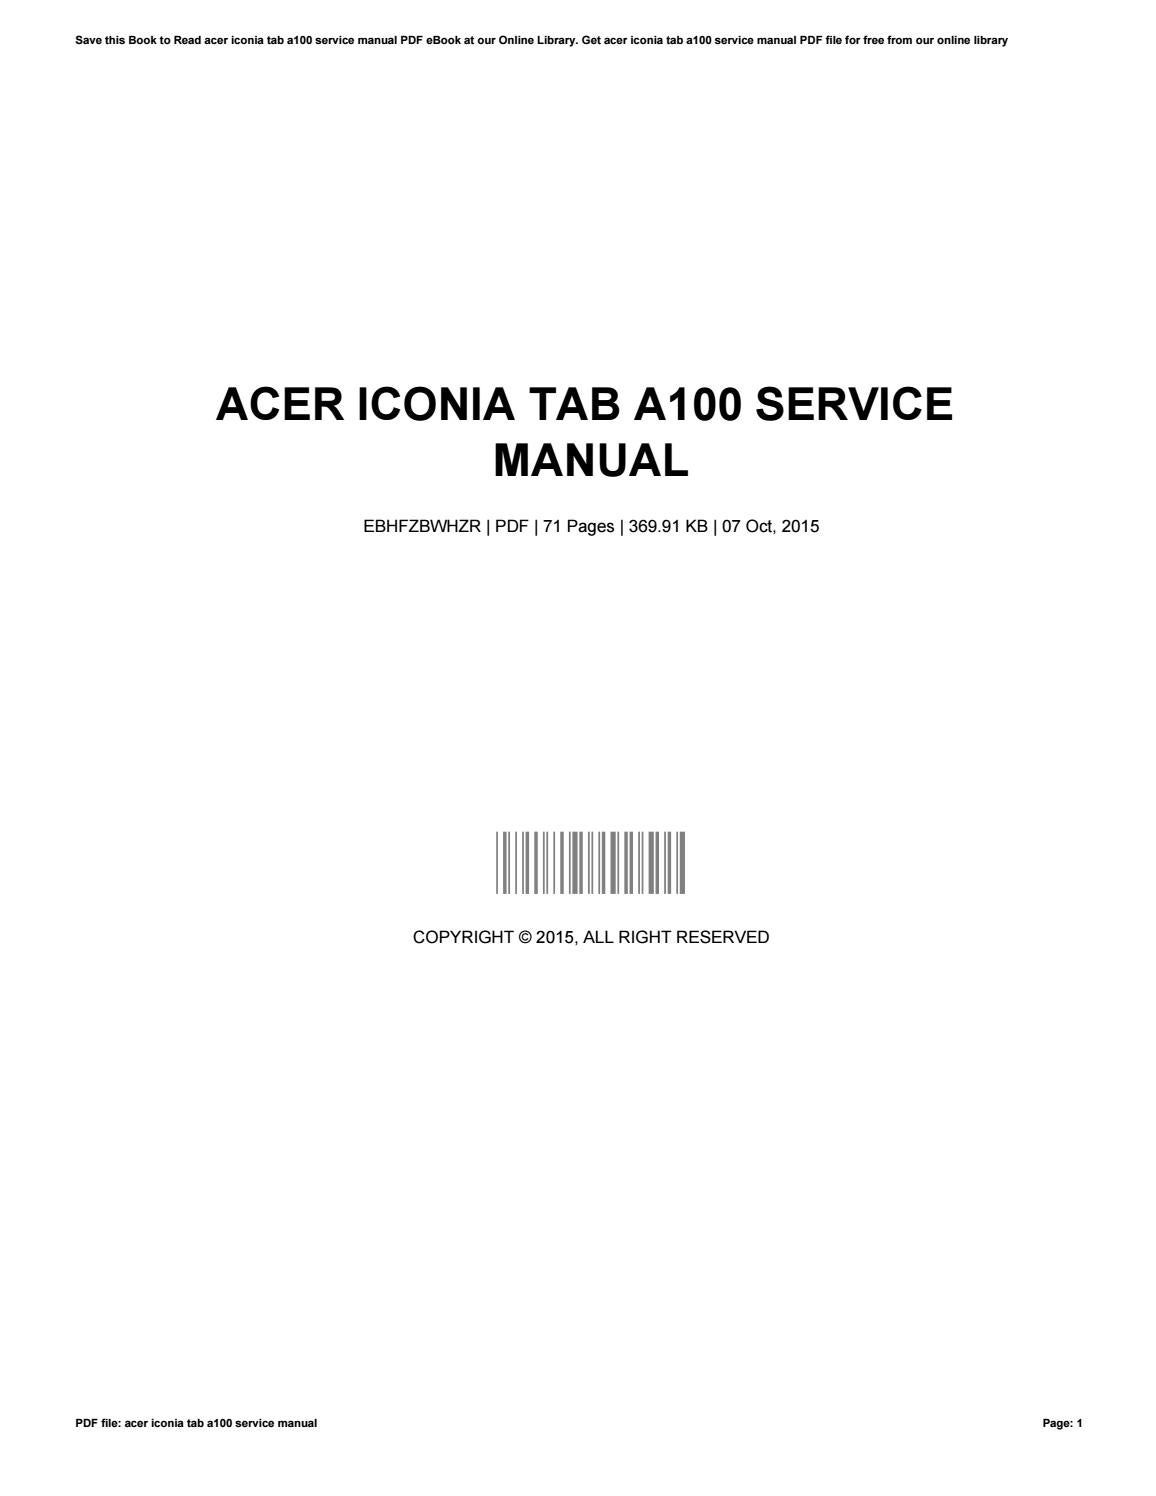 Acer iconia tab w501 manuals.